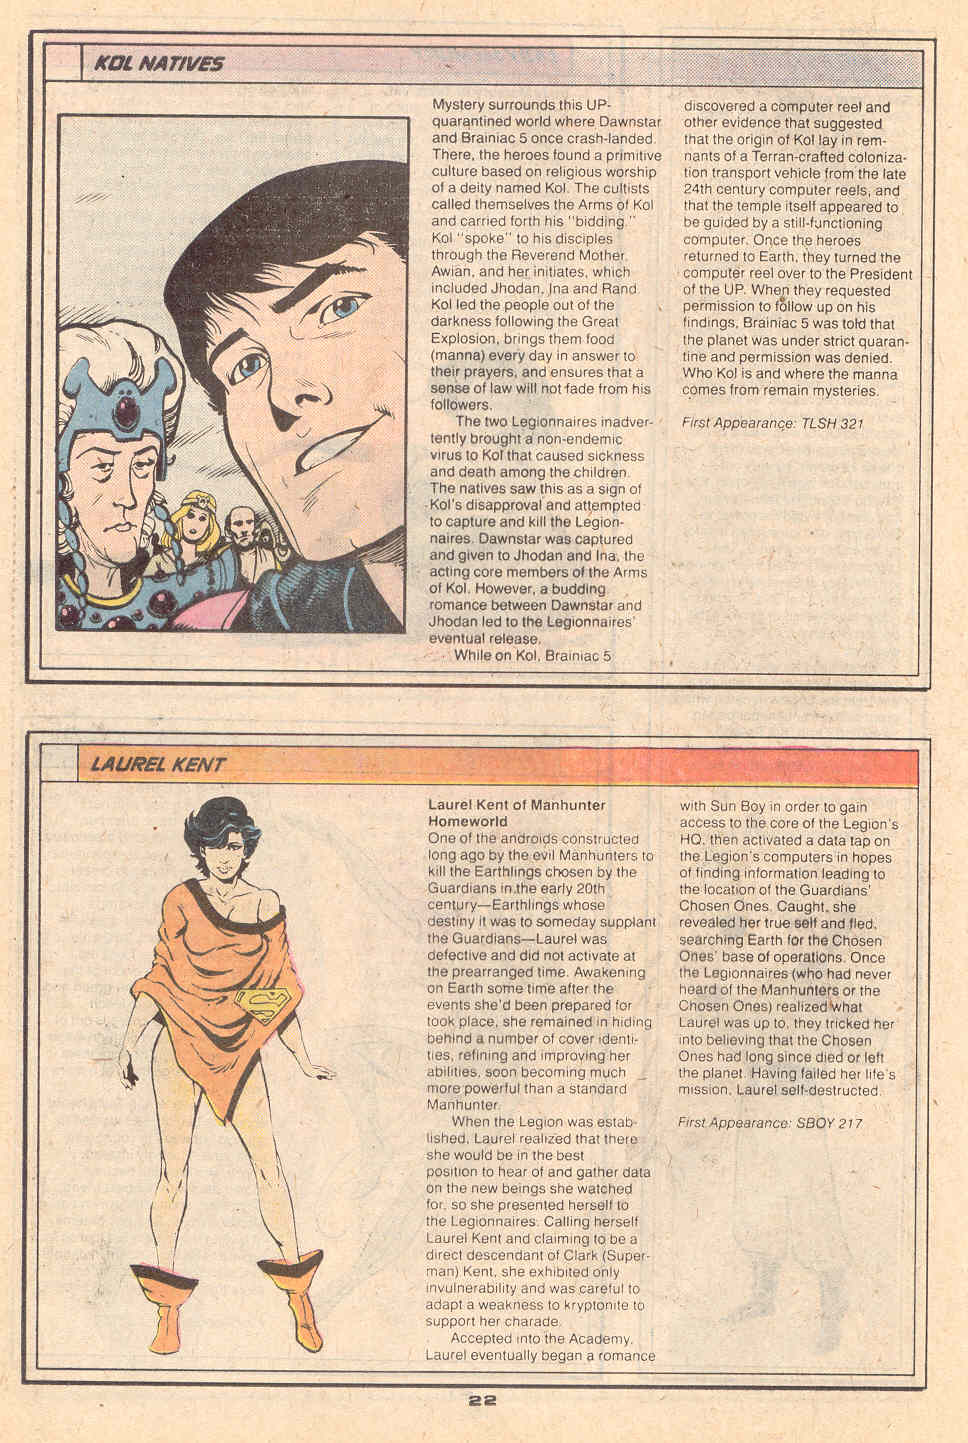 Kol Natives by Ty Templeton and Laurel Kent by Rob Liefeld - Who's Who in the Legion of Super-Heroes #3